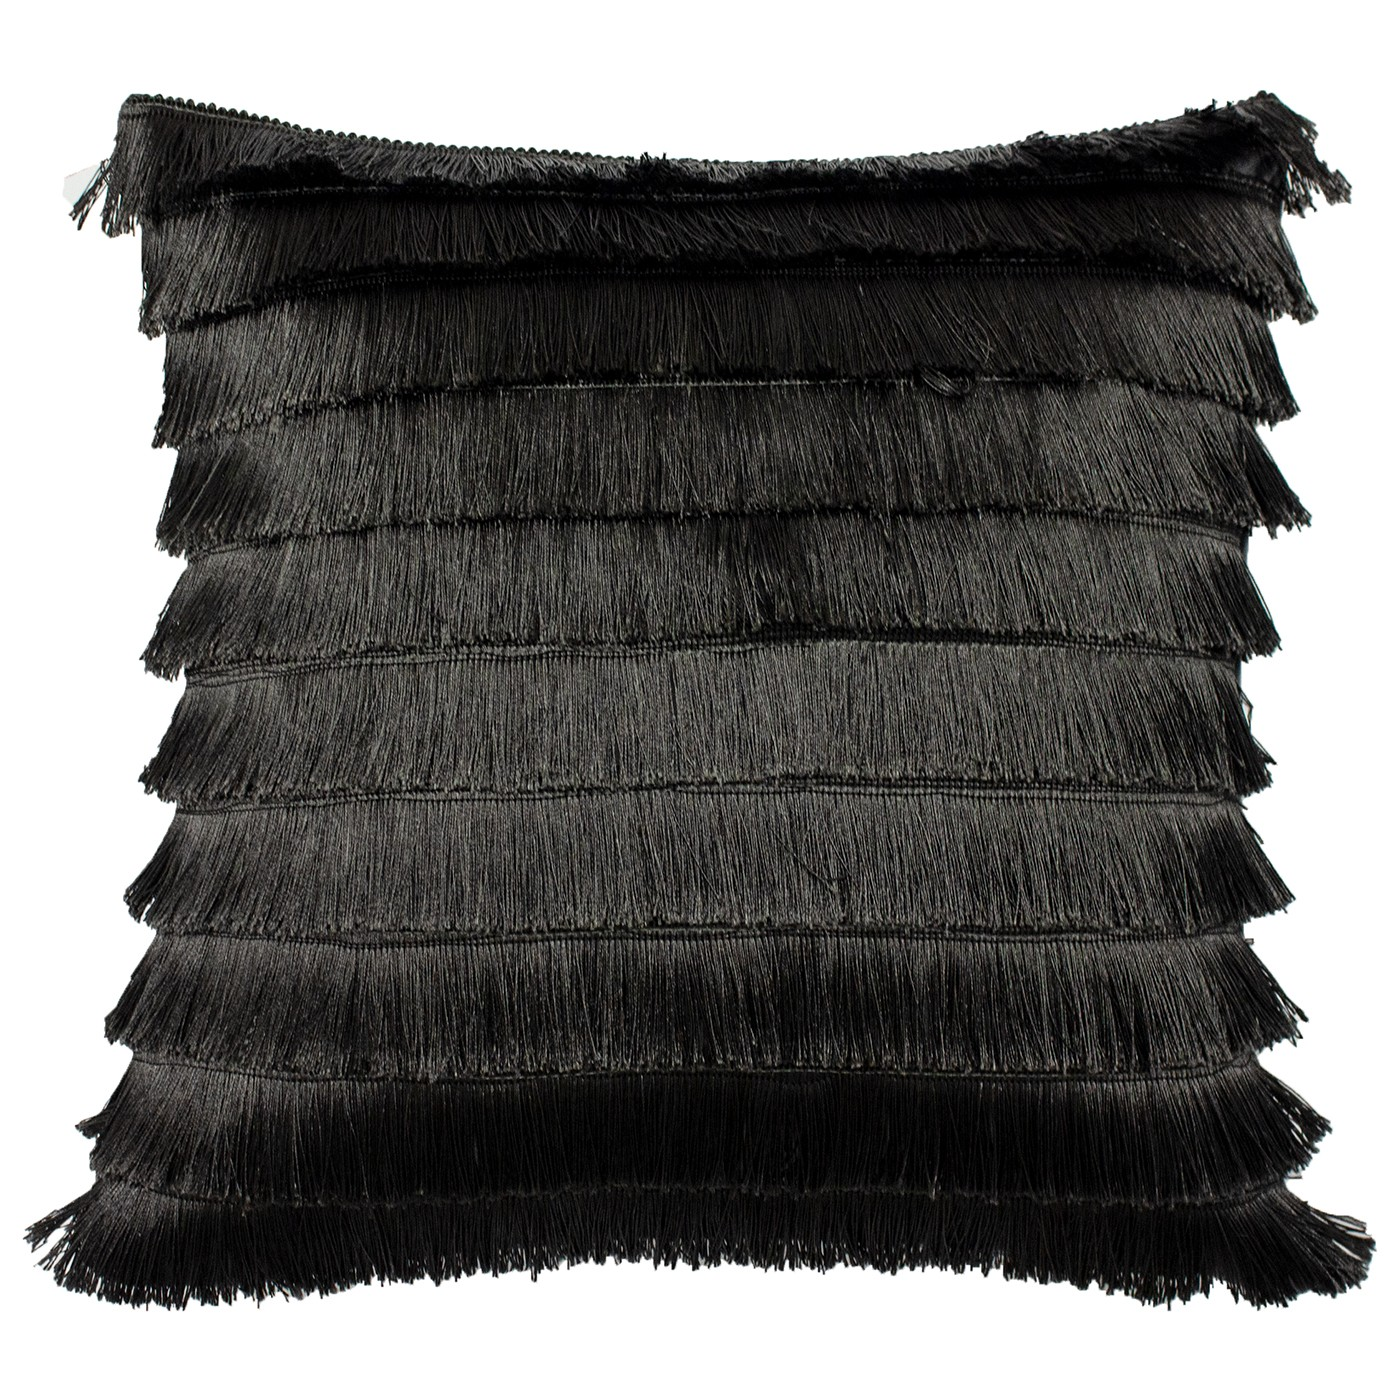 The Home Furnishings Company Flicker Graphite Fringed Cushion 45x45cms